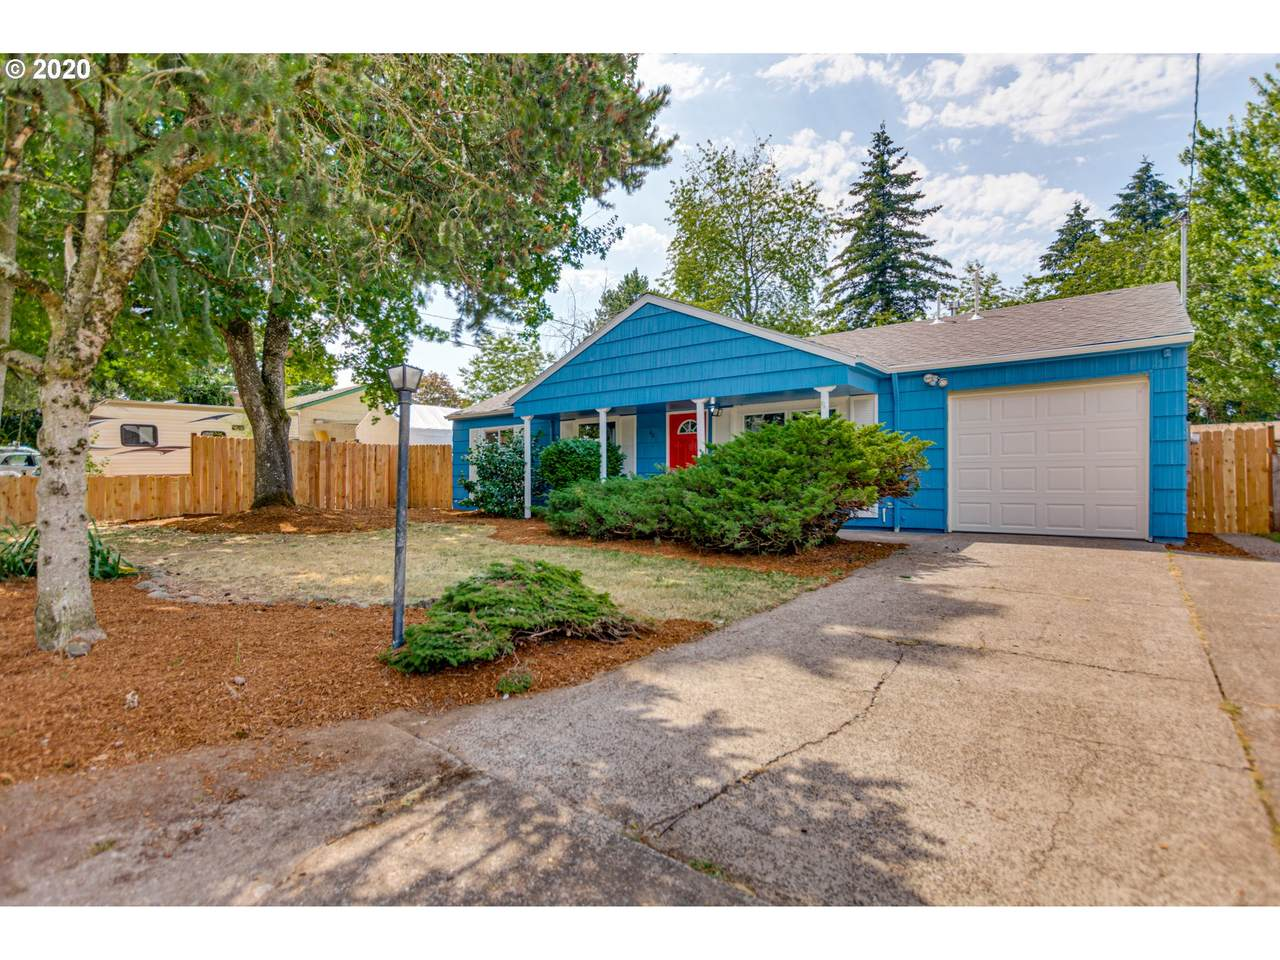 401 186TH Ave - Photo 1